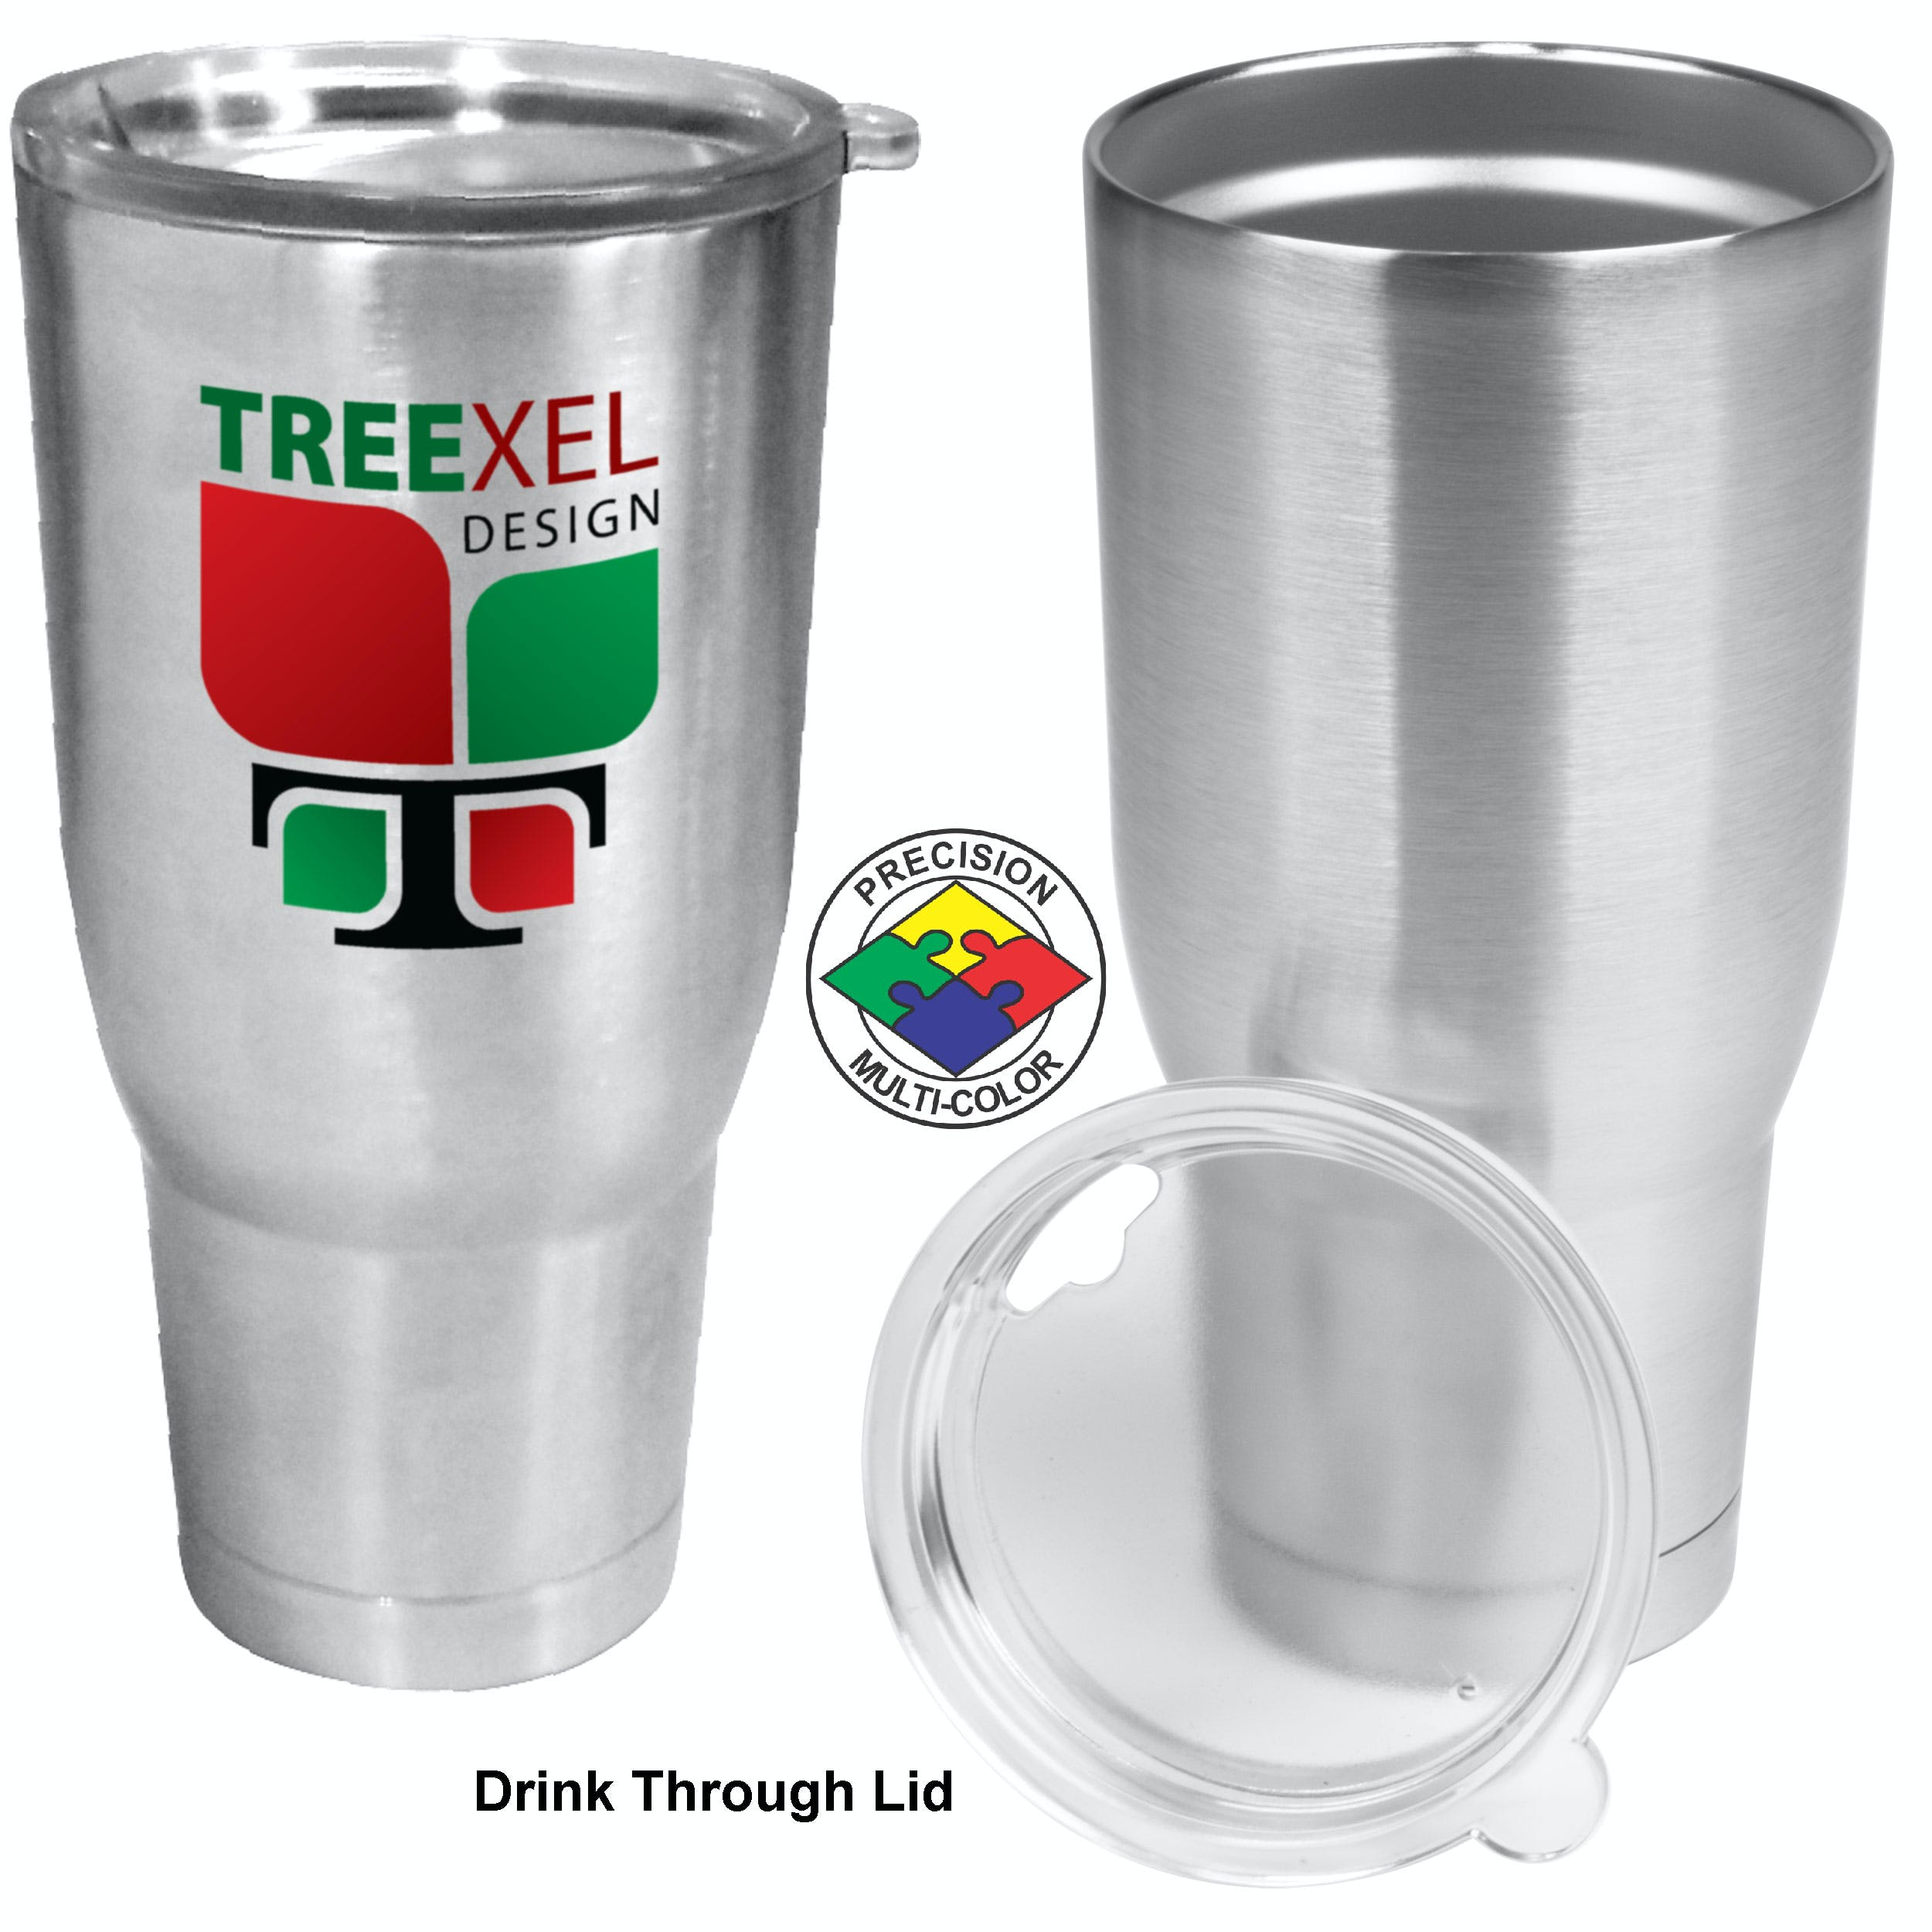 32oz Brushed Stainless Steel Double Wall Vacuum Tumbler with lid. Stainless steel mug sold by PyroGraphics